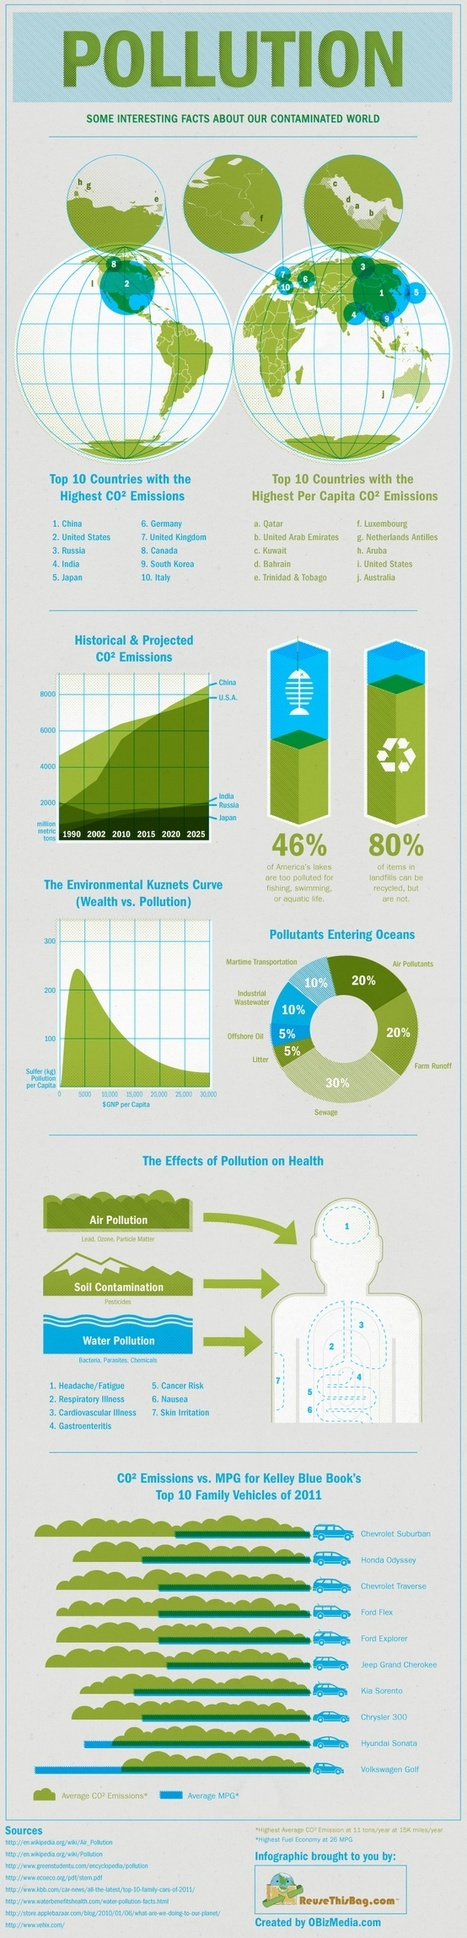 CO2 Emissions & Pollution | Sustainable ⊜ Smart Path | Scoop.it